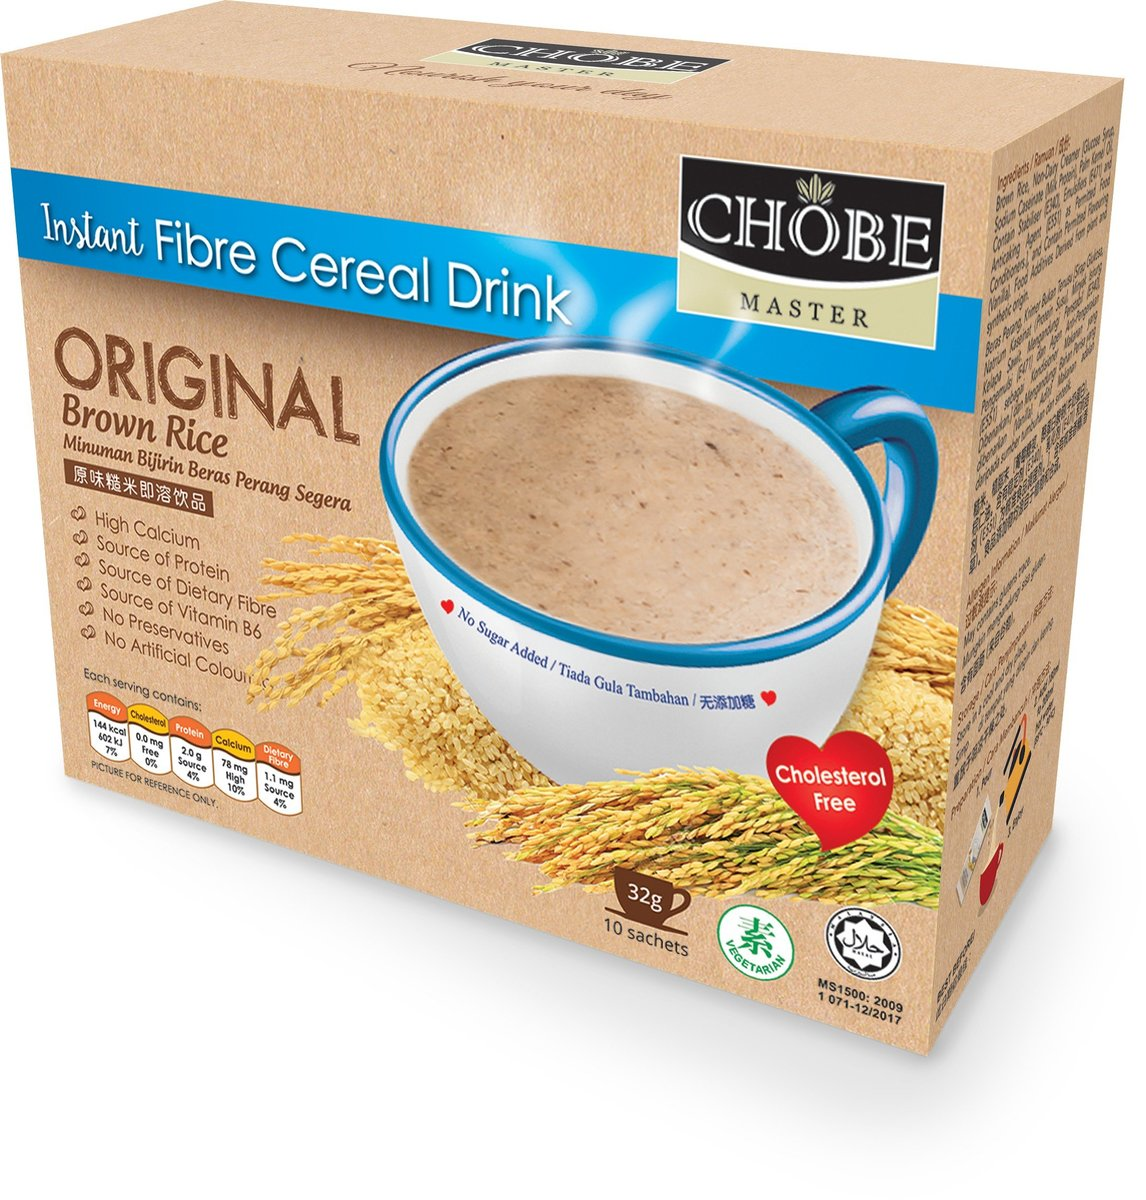 1 box Chobe Master Instant Original Flavor Brown Rice Fibre Cereal Drink 10 sachet x 32g / box